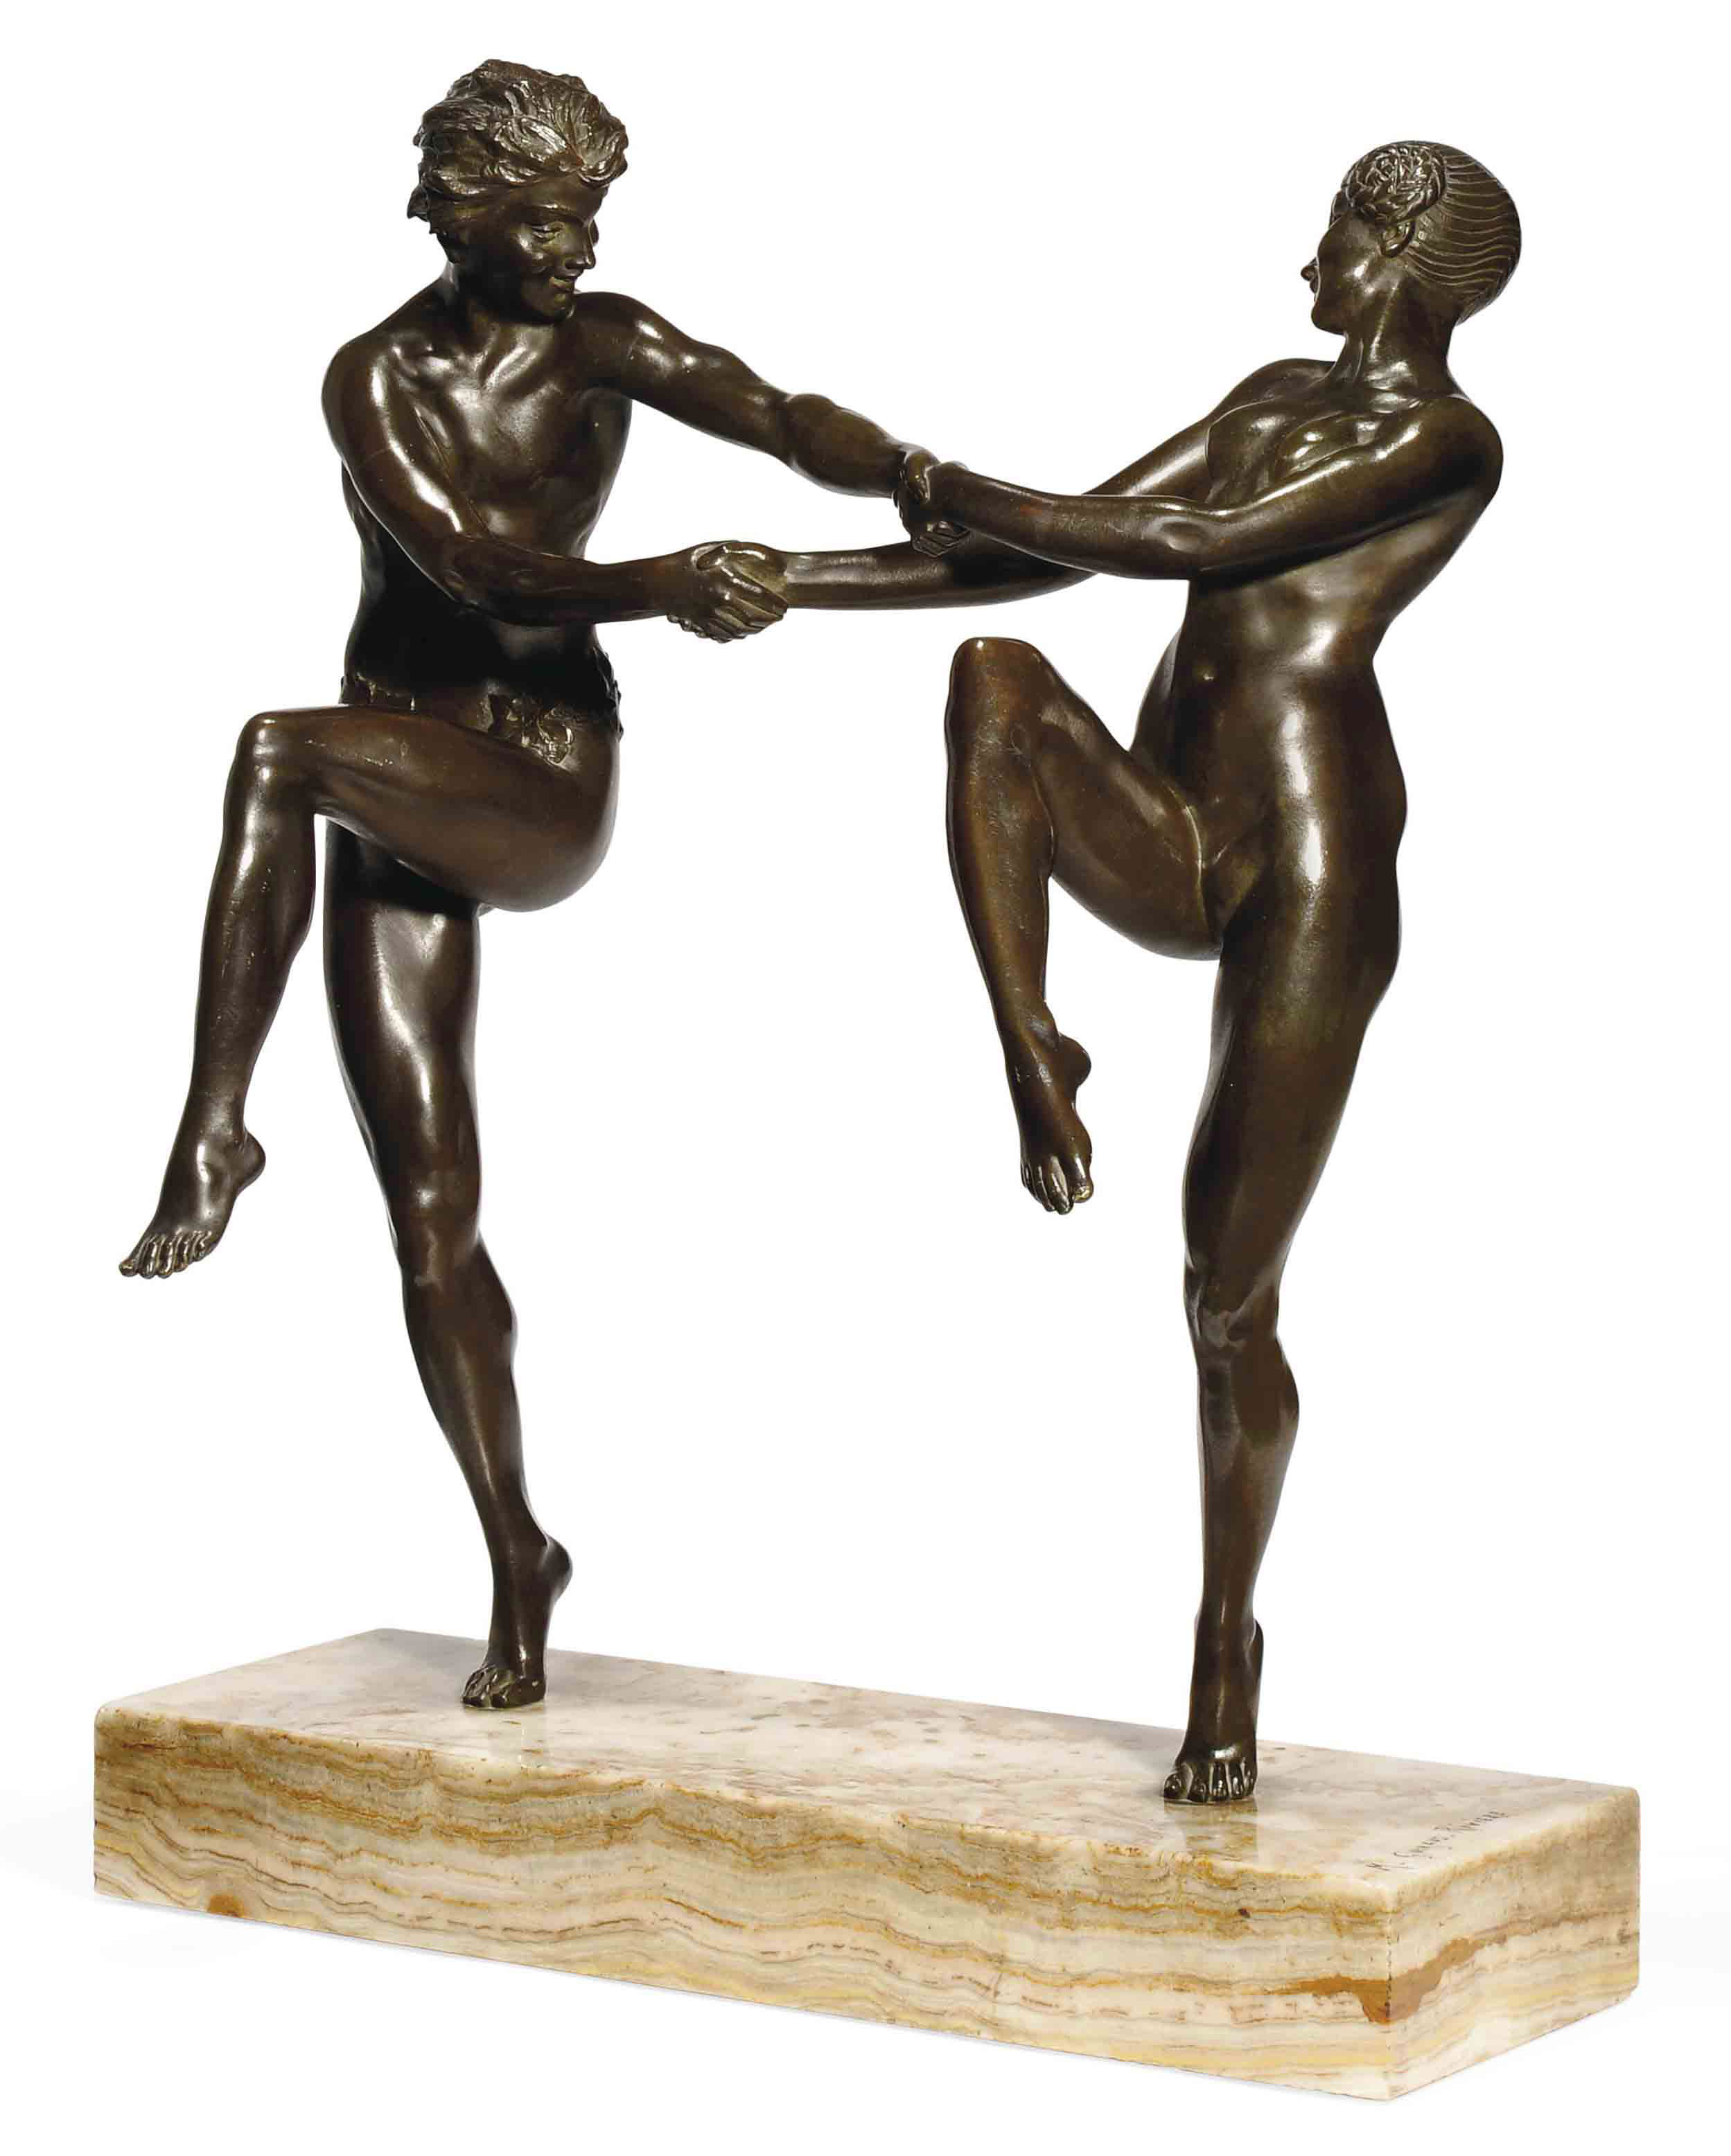 'THE DANCE' A MAURICE GUIRAUD-RIVIÈRE PATINATED BRONZE GROUP